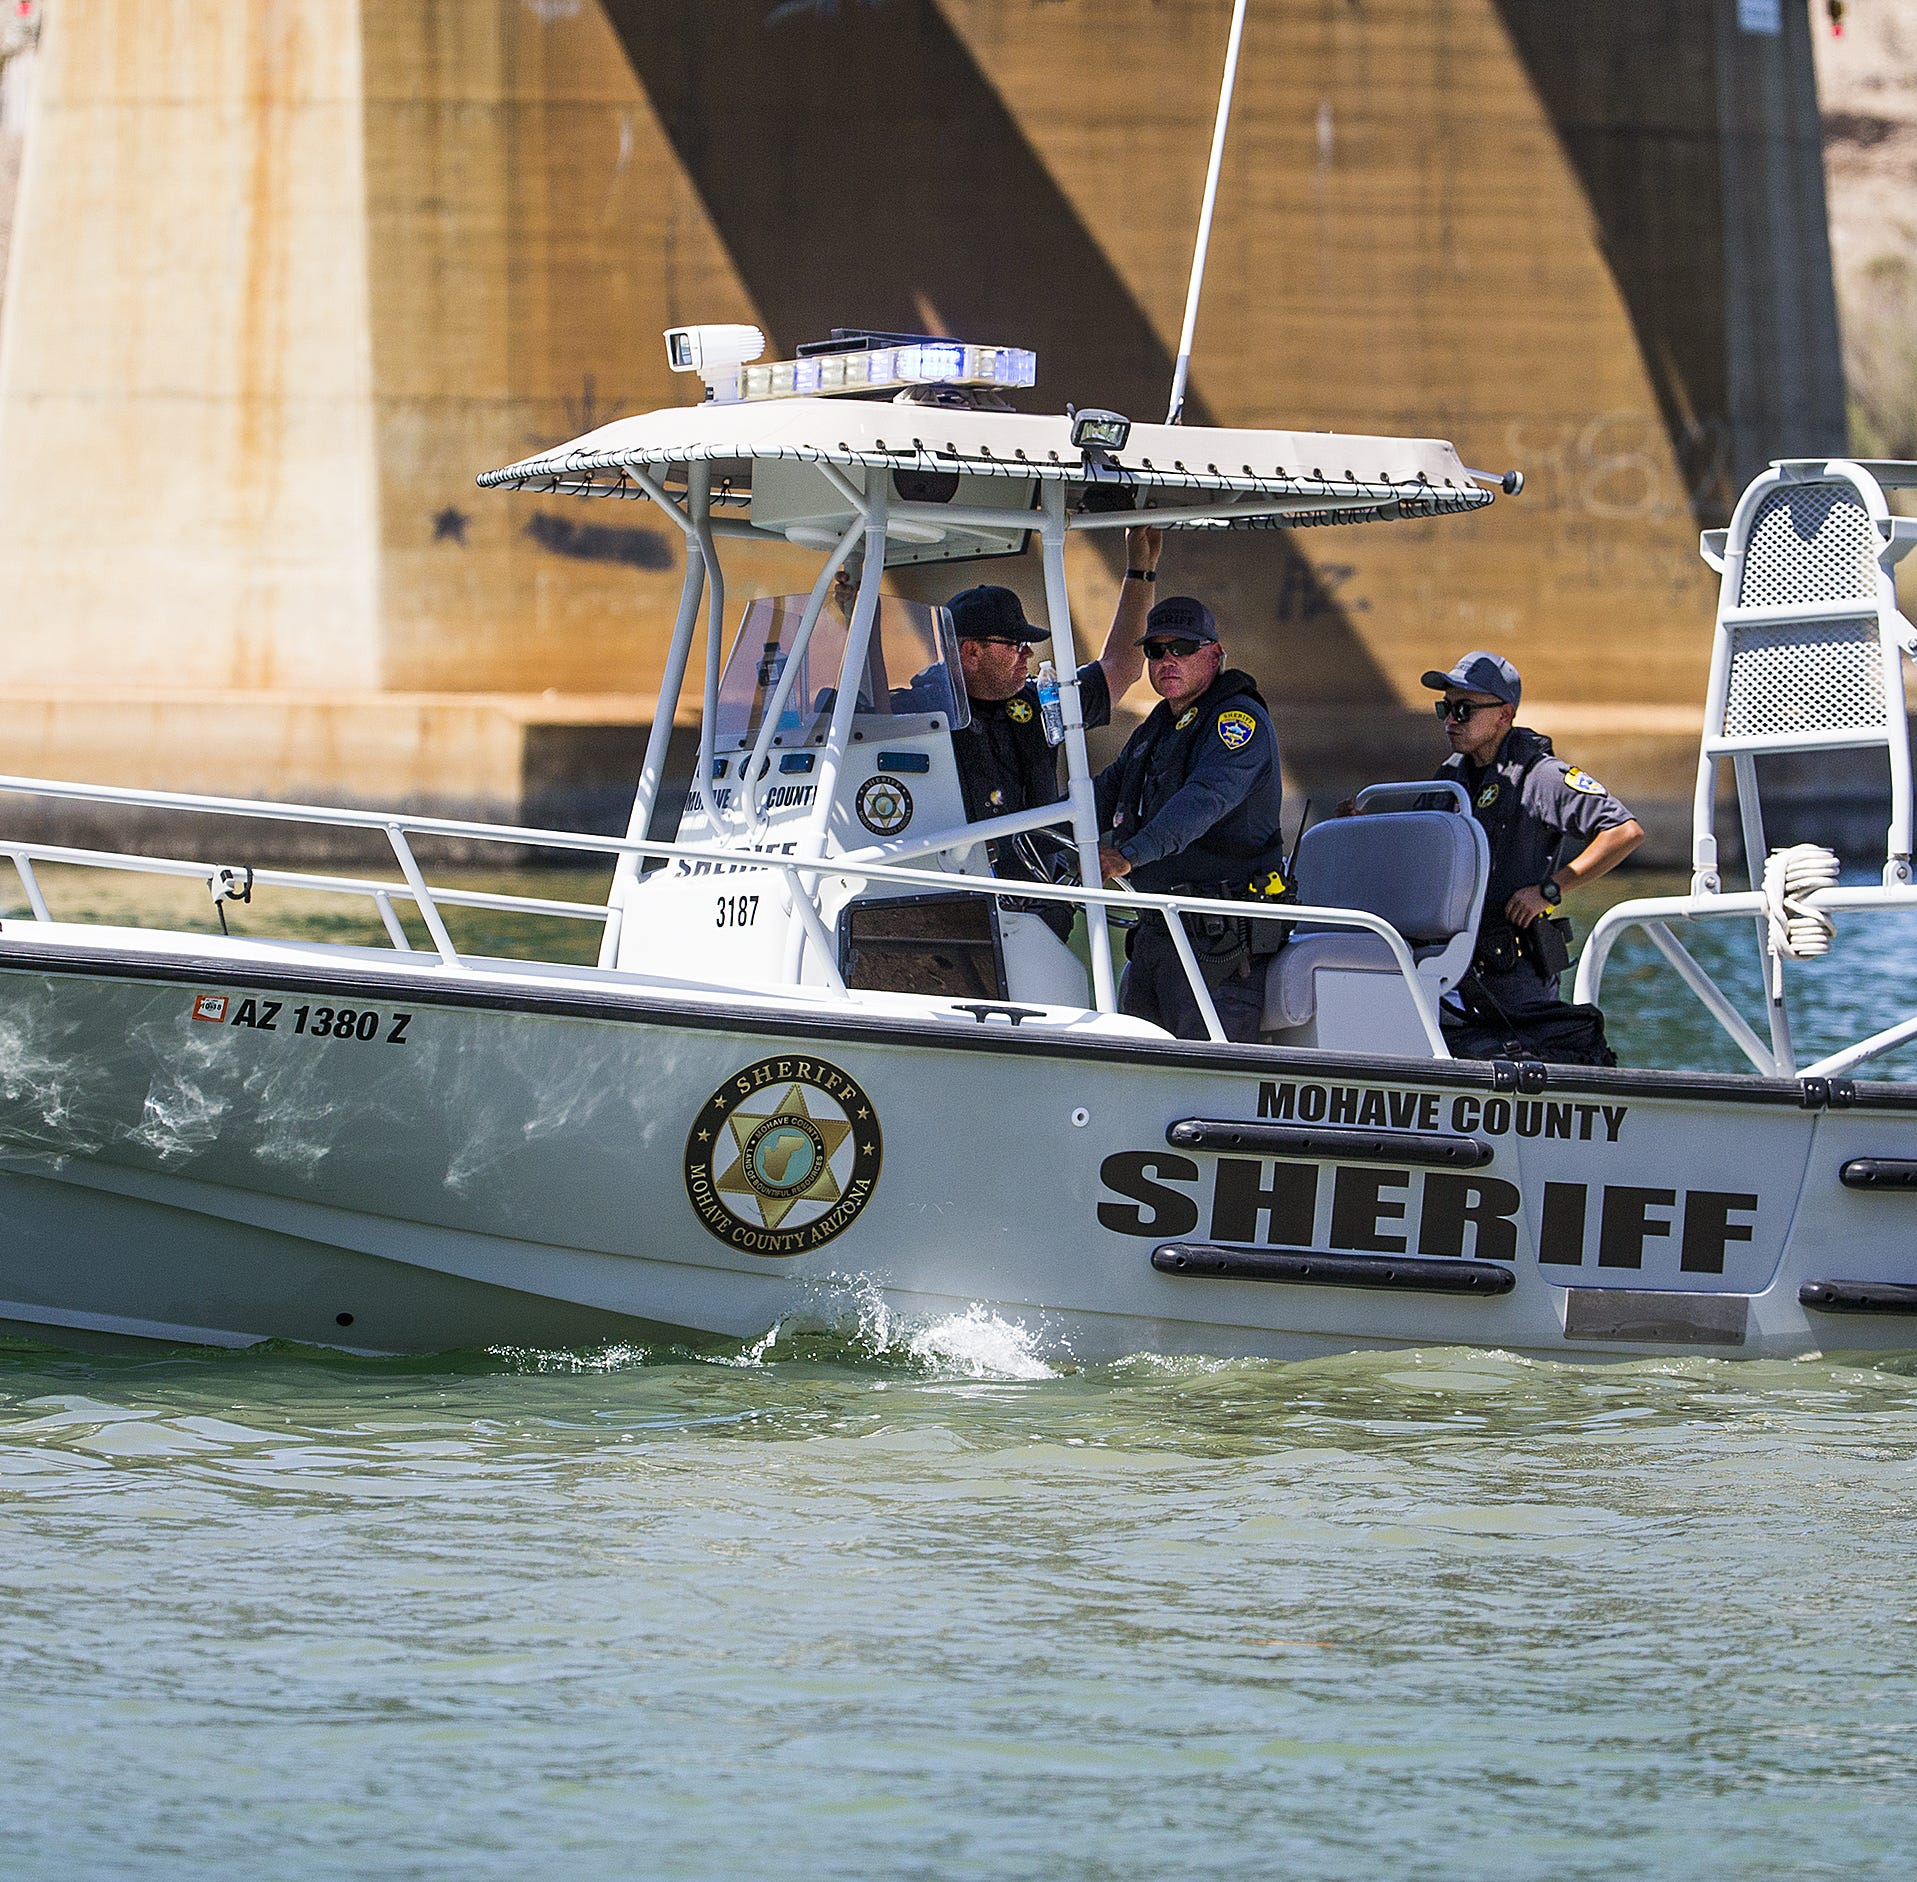 Colorado River boat crash: 'We will remain steadfast' as search continues, sheriff says